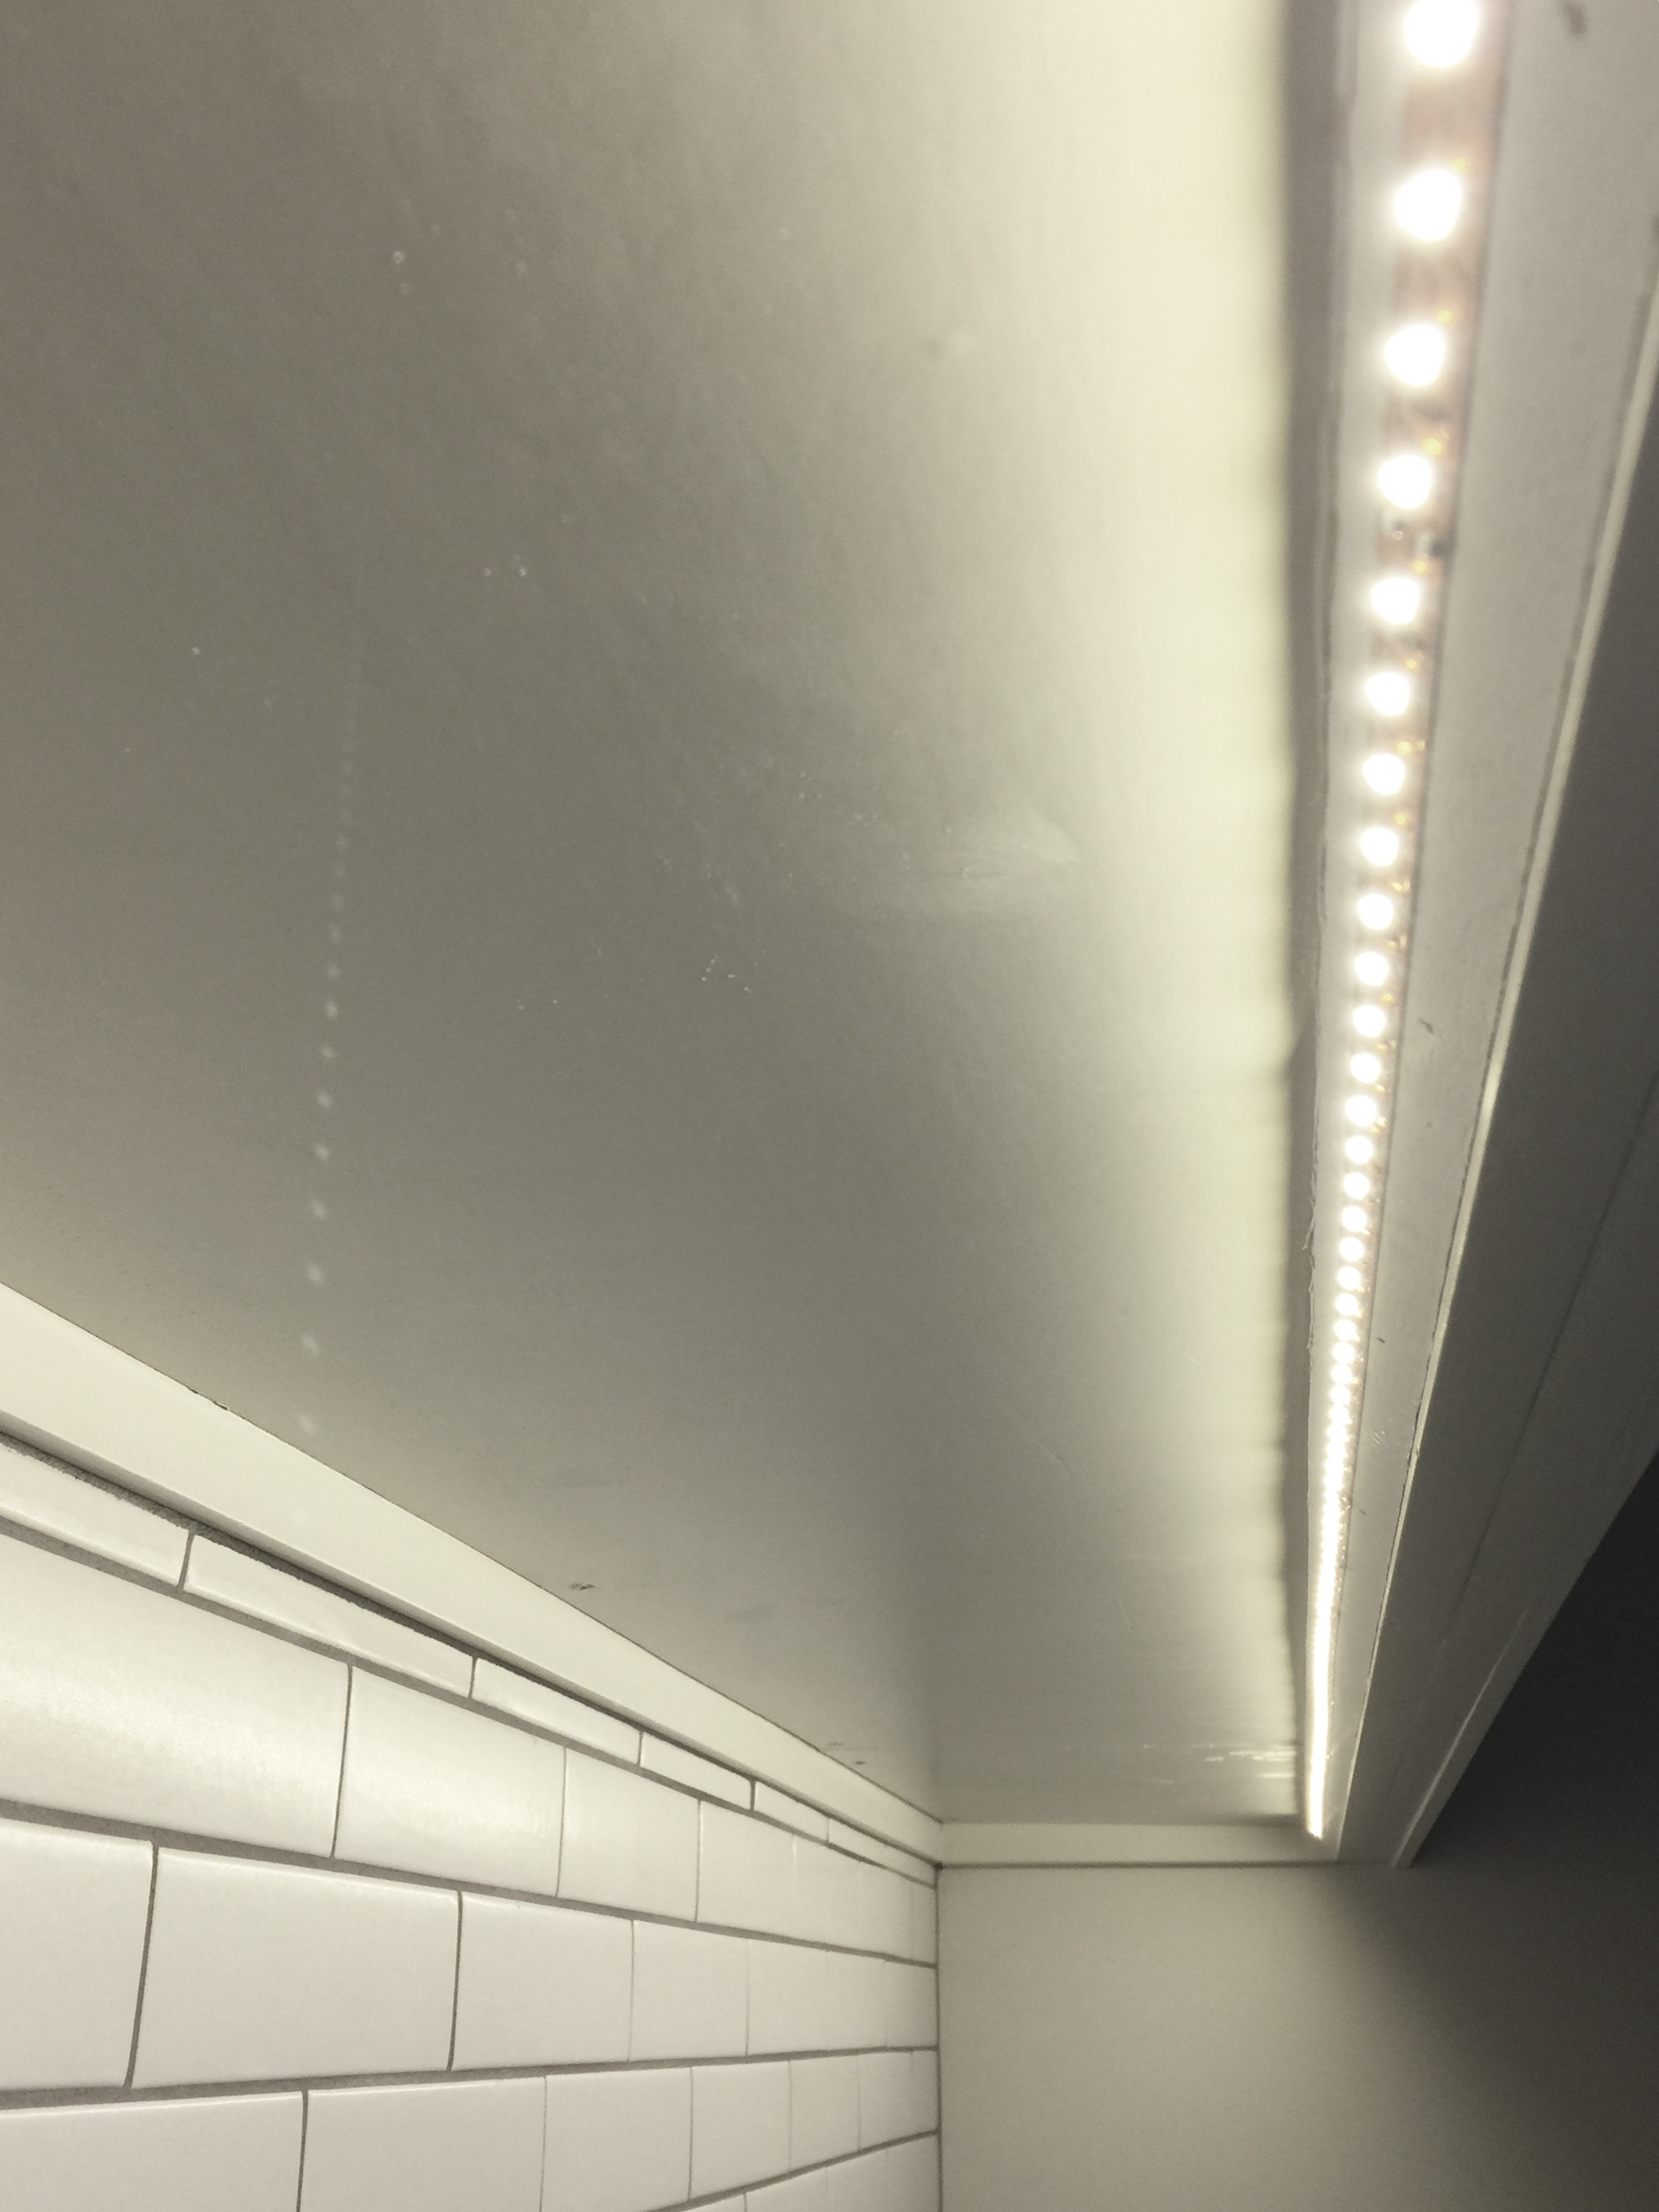 LED undercabinet lighting used in my kitchen remodel, angled so as not to reflect into the countertop below.